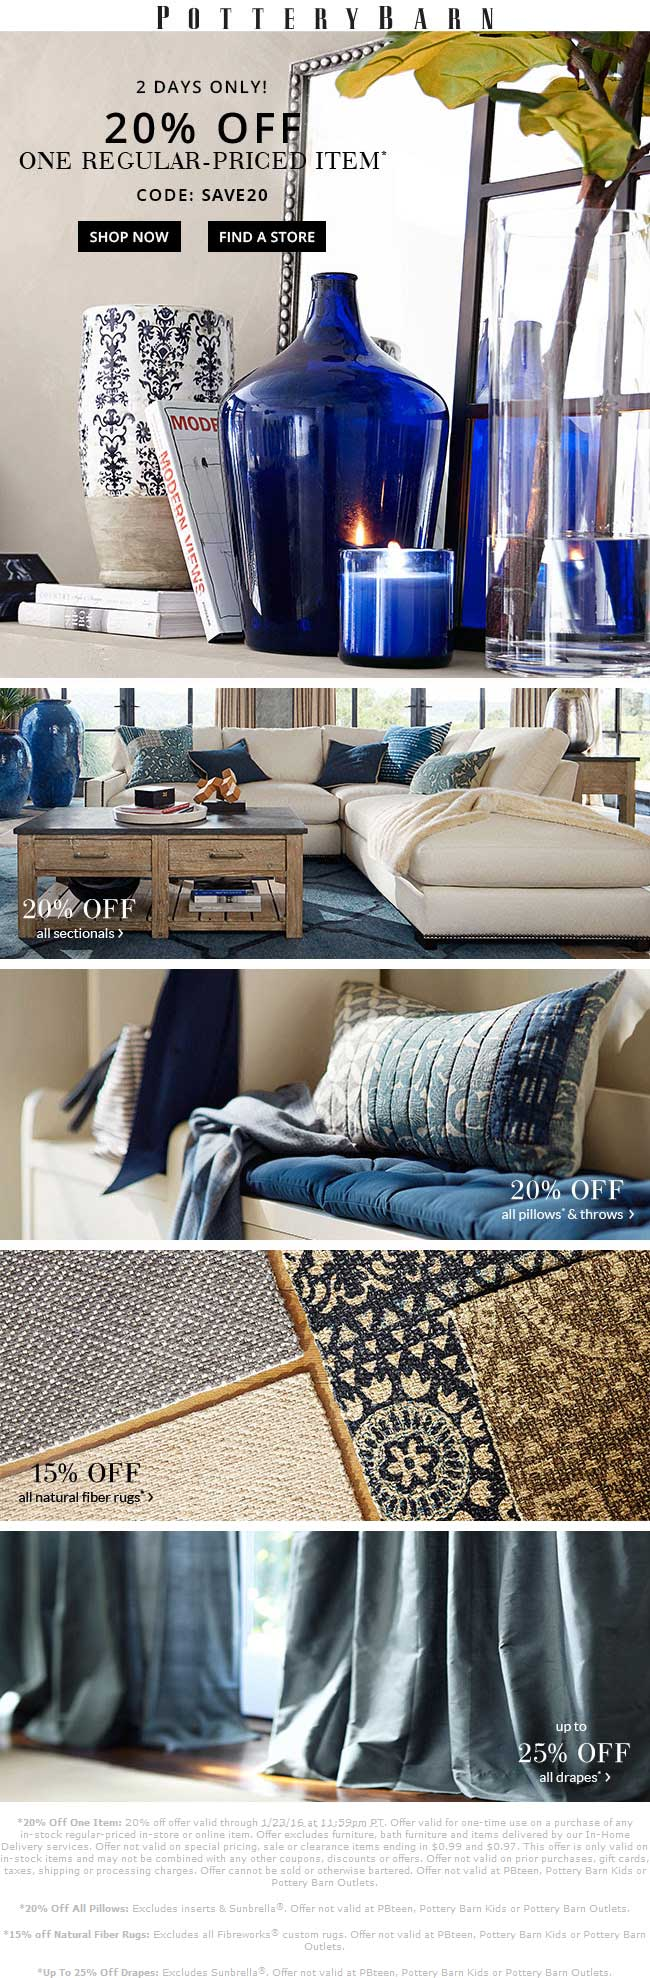 Pottery Barn Coupon April 2017 20% off a single item at Pottery Barn, or online via promo code SAVE20